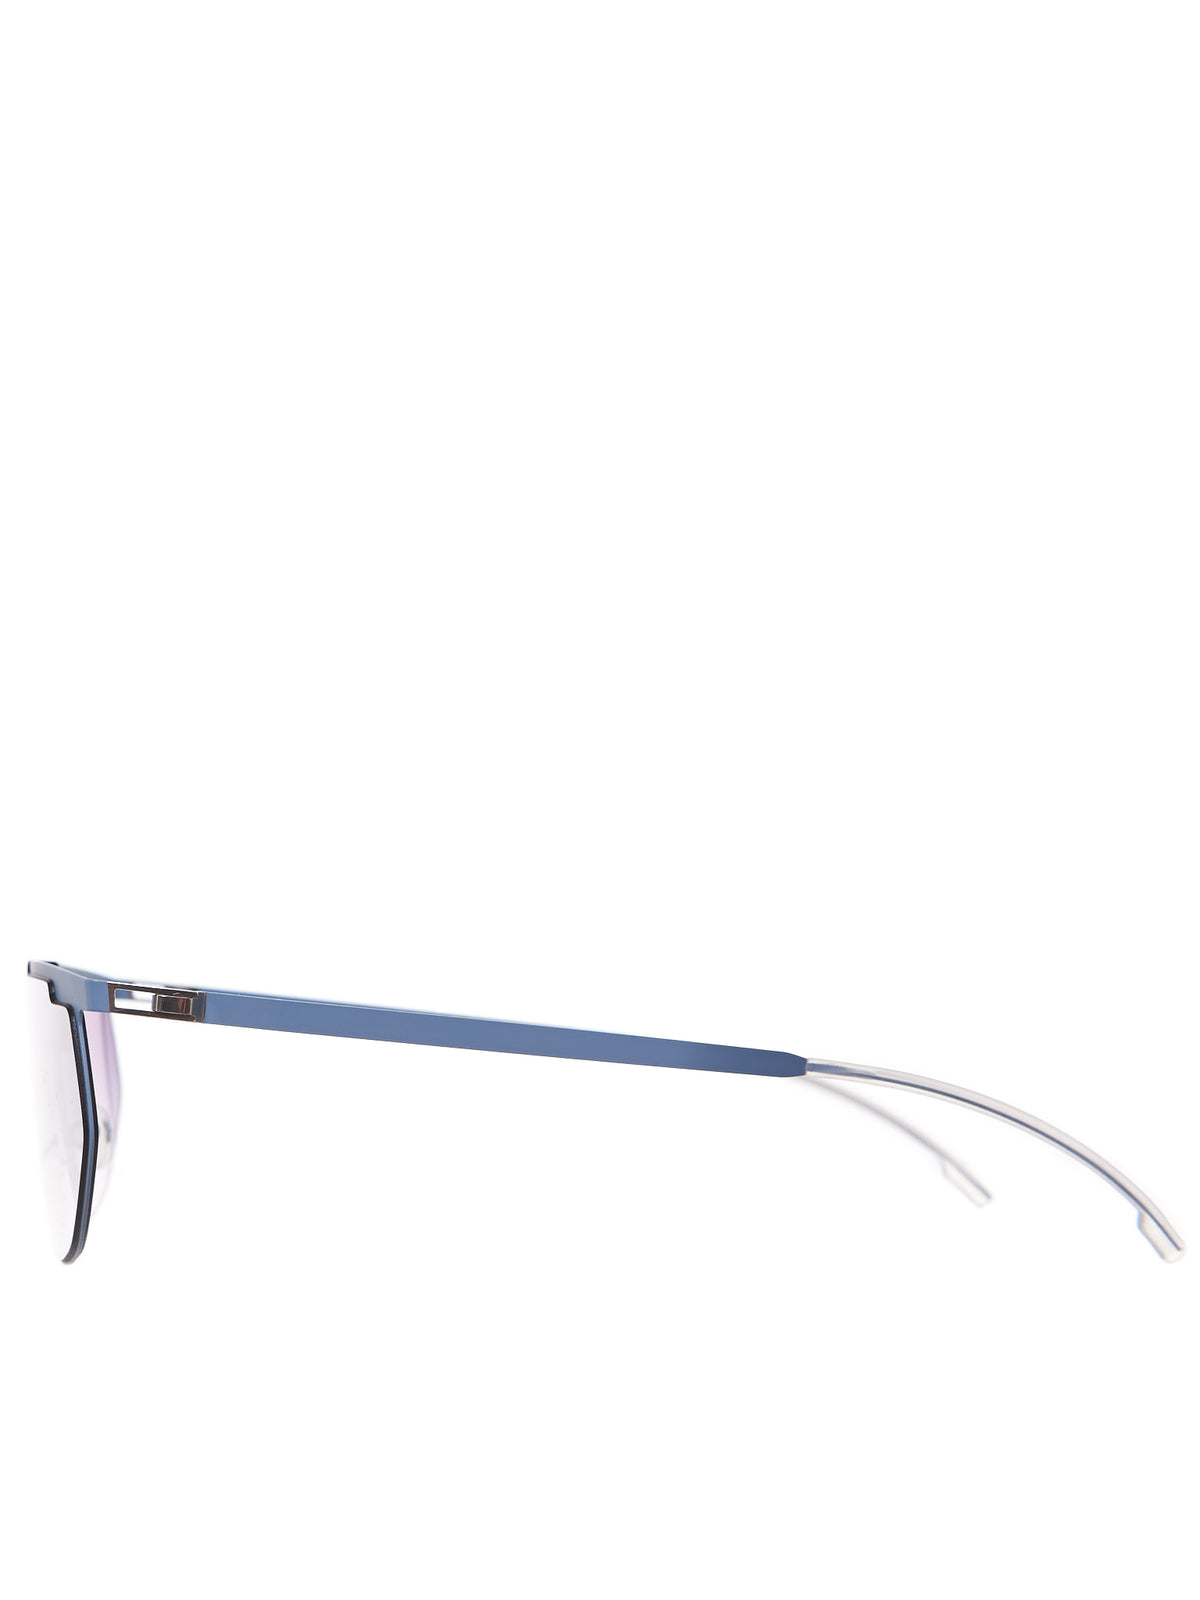 Shield Sunglasses (PARIS-MH48-BLUEGREY-DARK-BLYE)